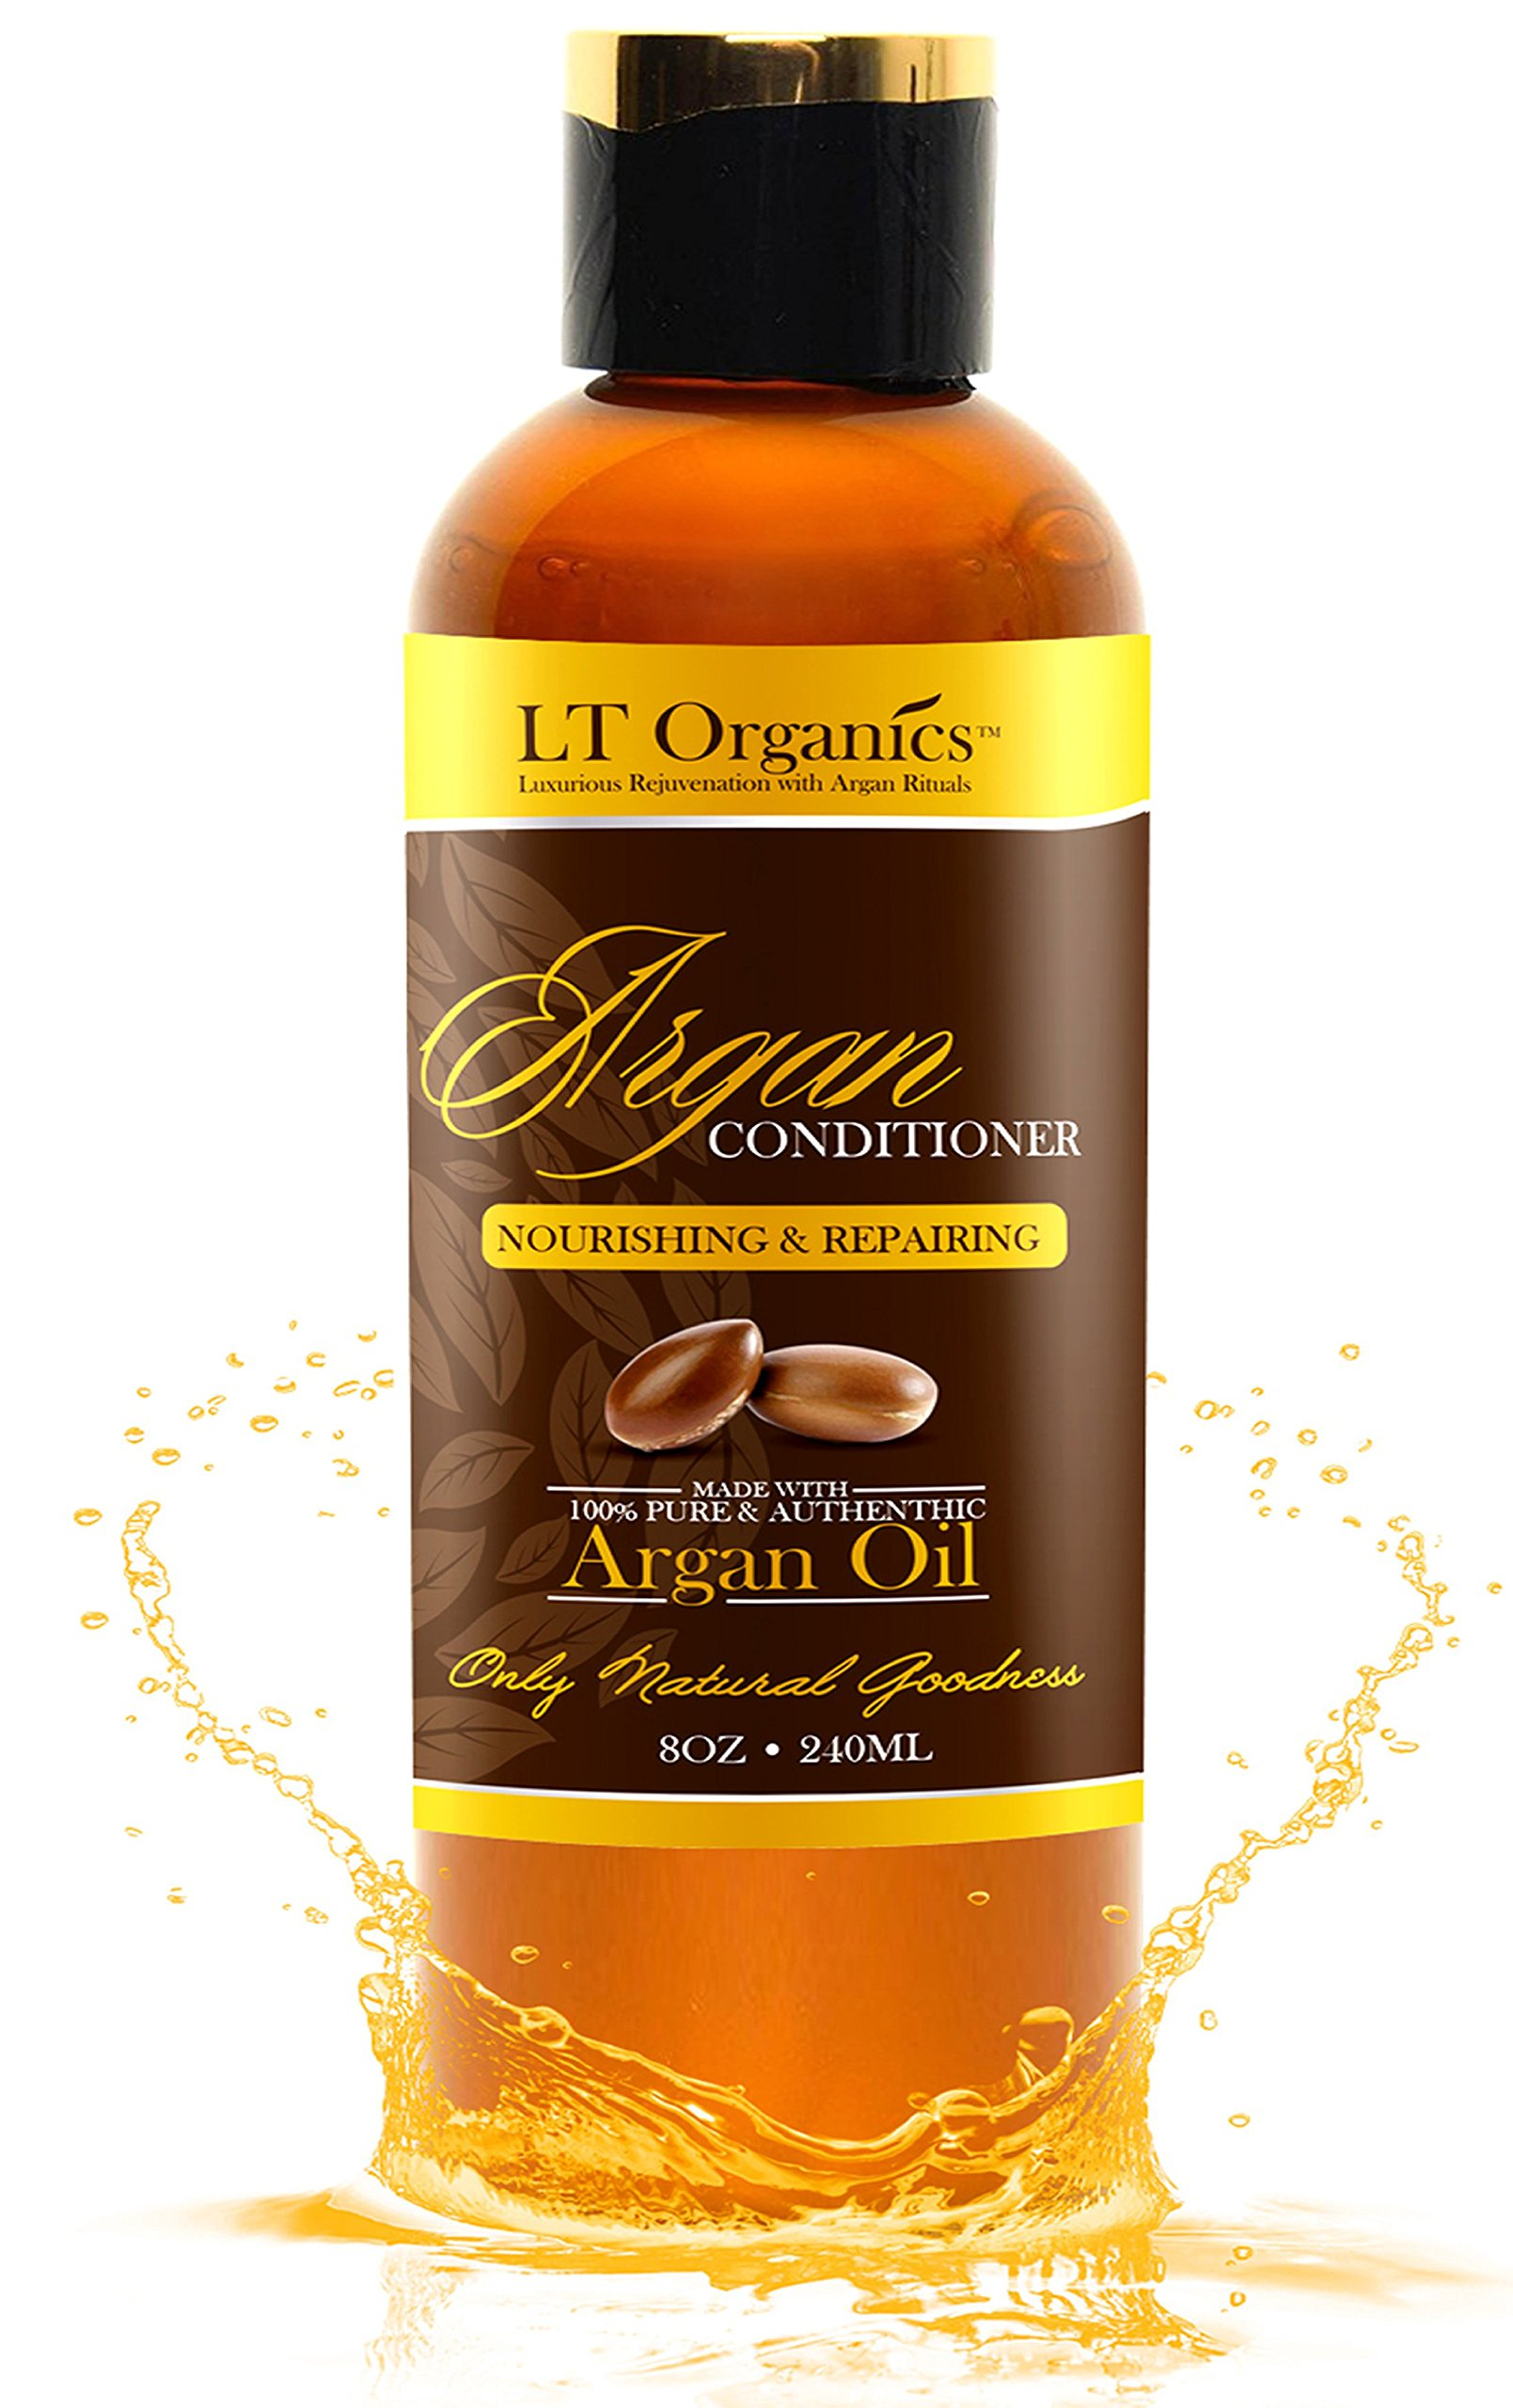 BEST Paraben Free and Sulfate Free Argan Oil Conditioner - Eliminates Frizz & Restores Hair Growth - Backed By 120-Day warranty & 100% Satisfaction Guarantee! Renewing, Natural & Sulfate-free. 8oz